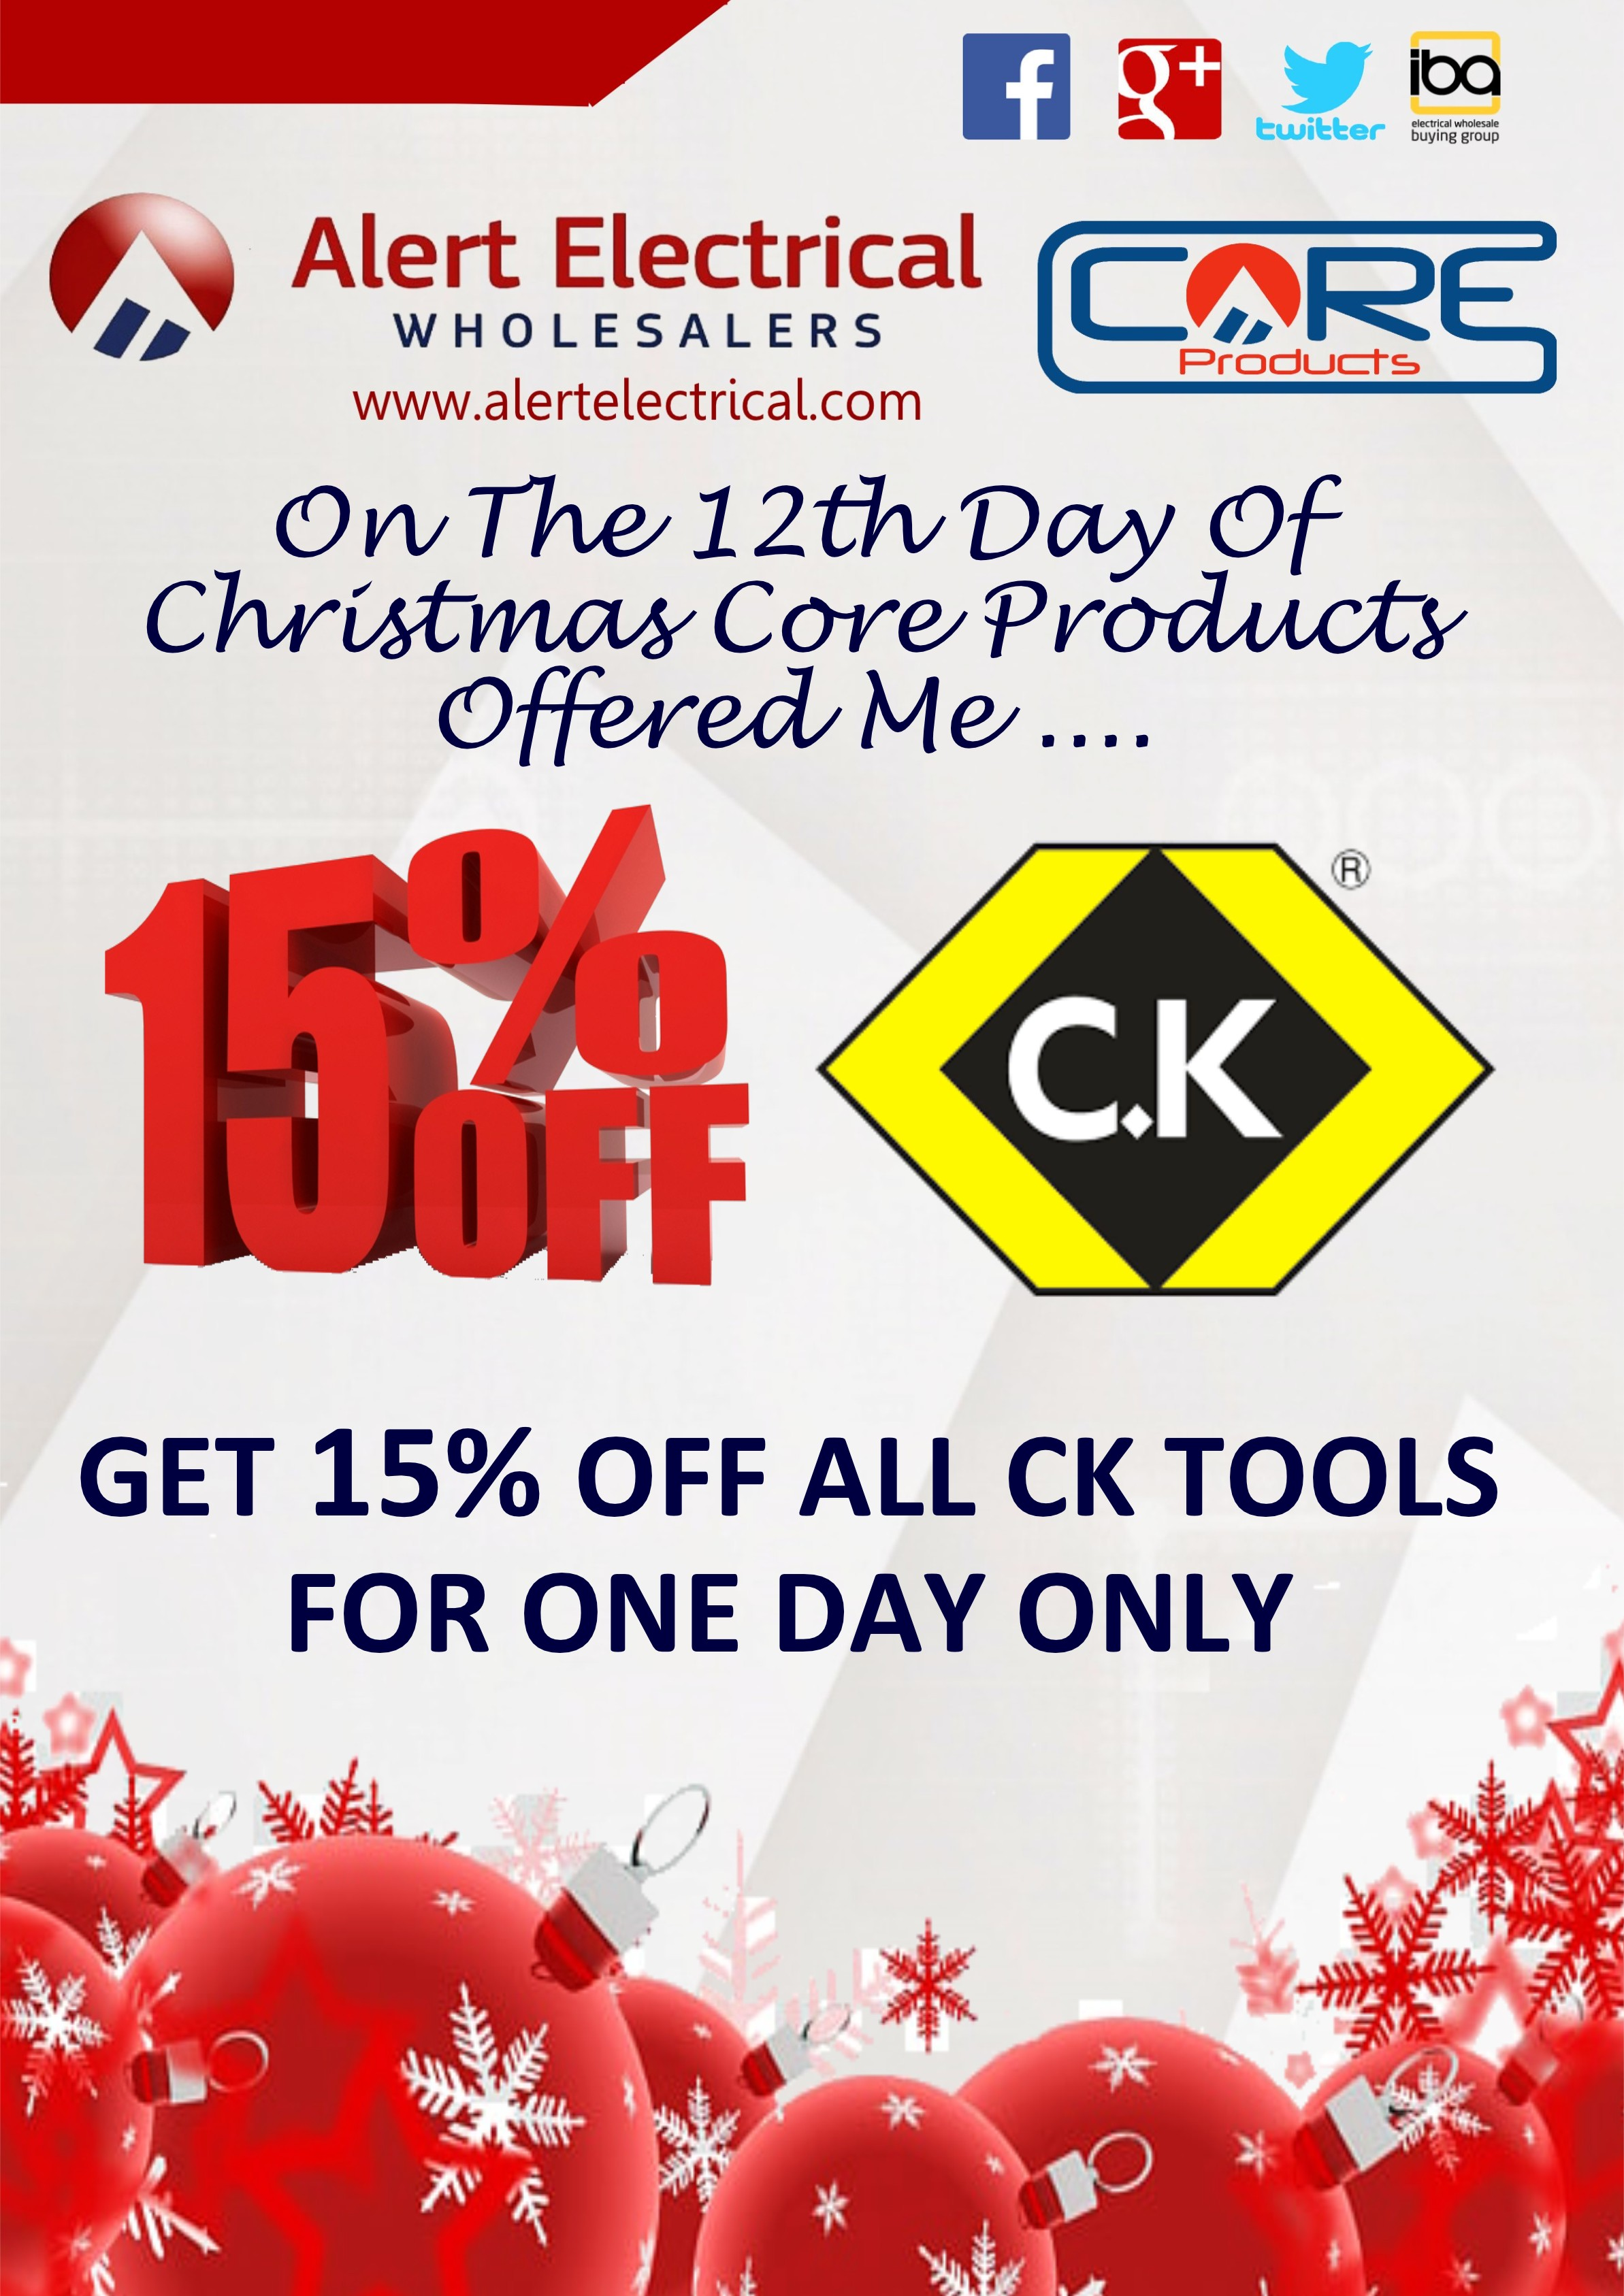 Alert Electrical Wholesalers 12 Days of Christmas. Day 12 C.K Tools One Day Only Offer